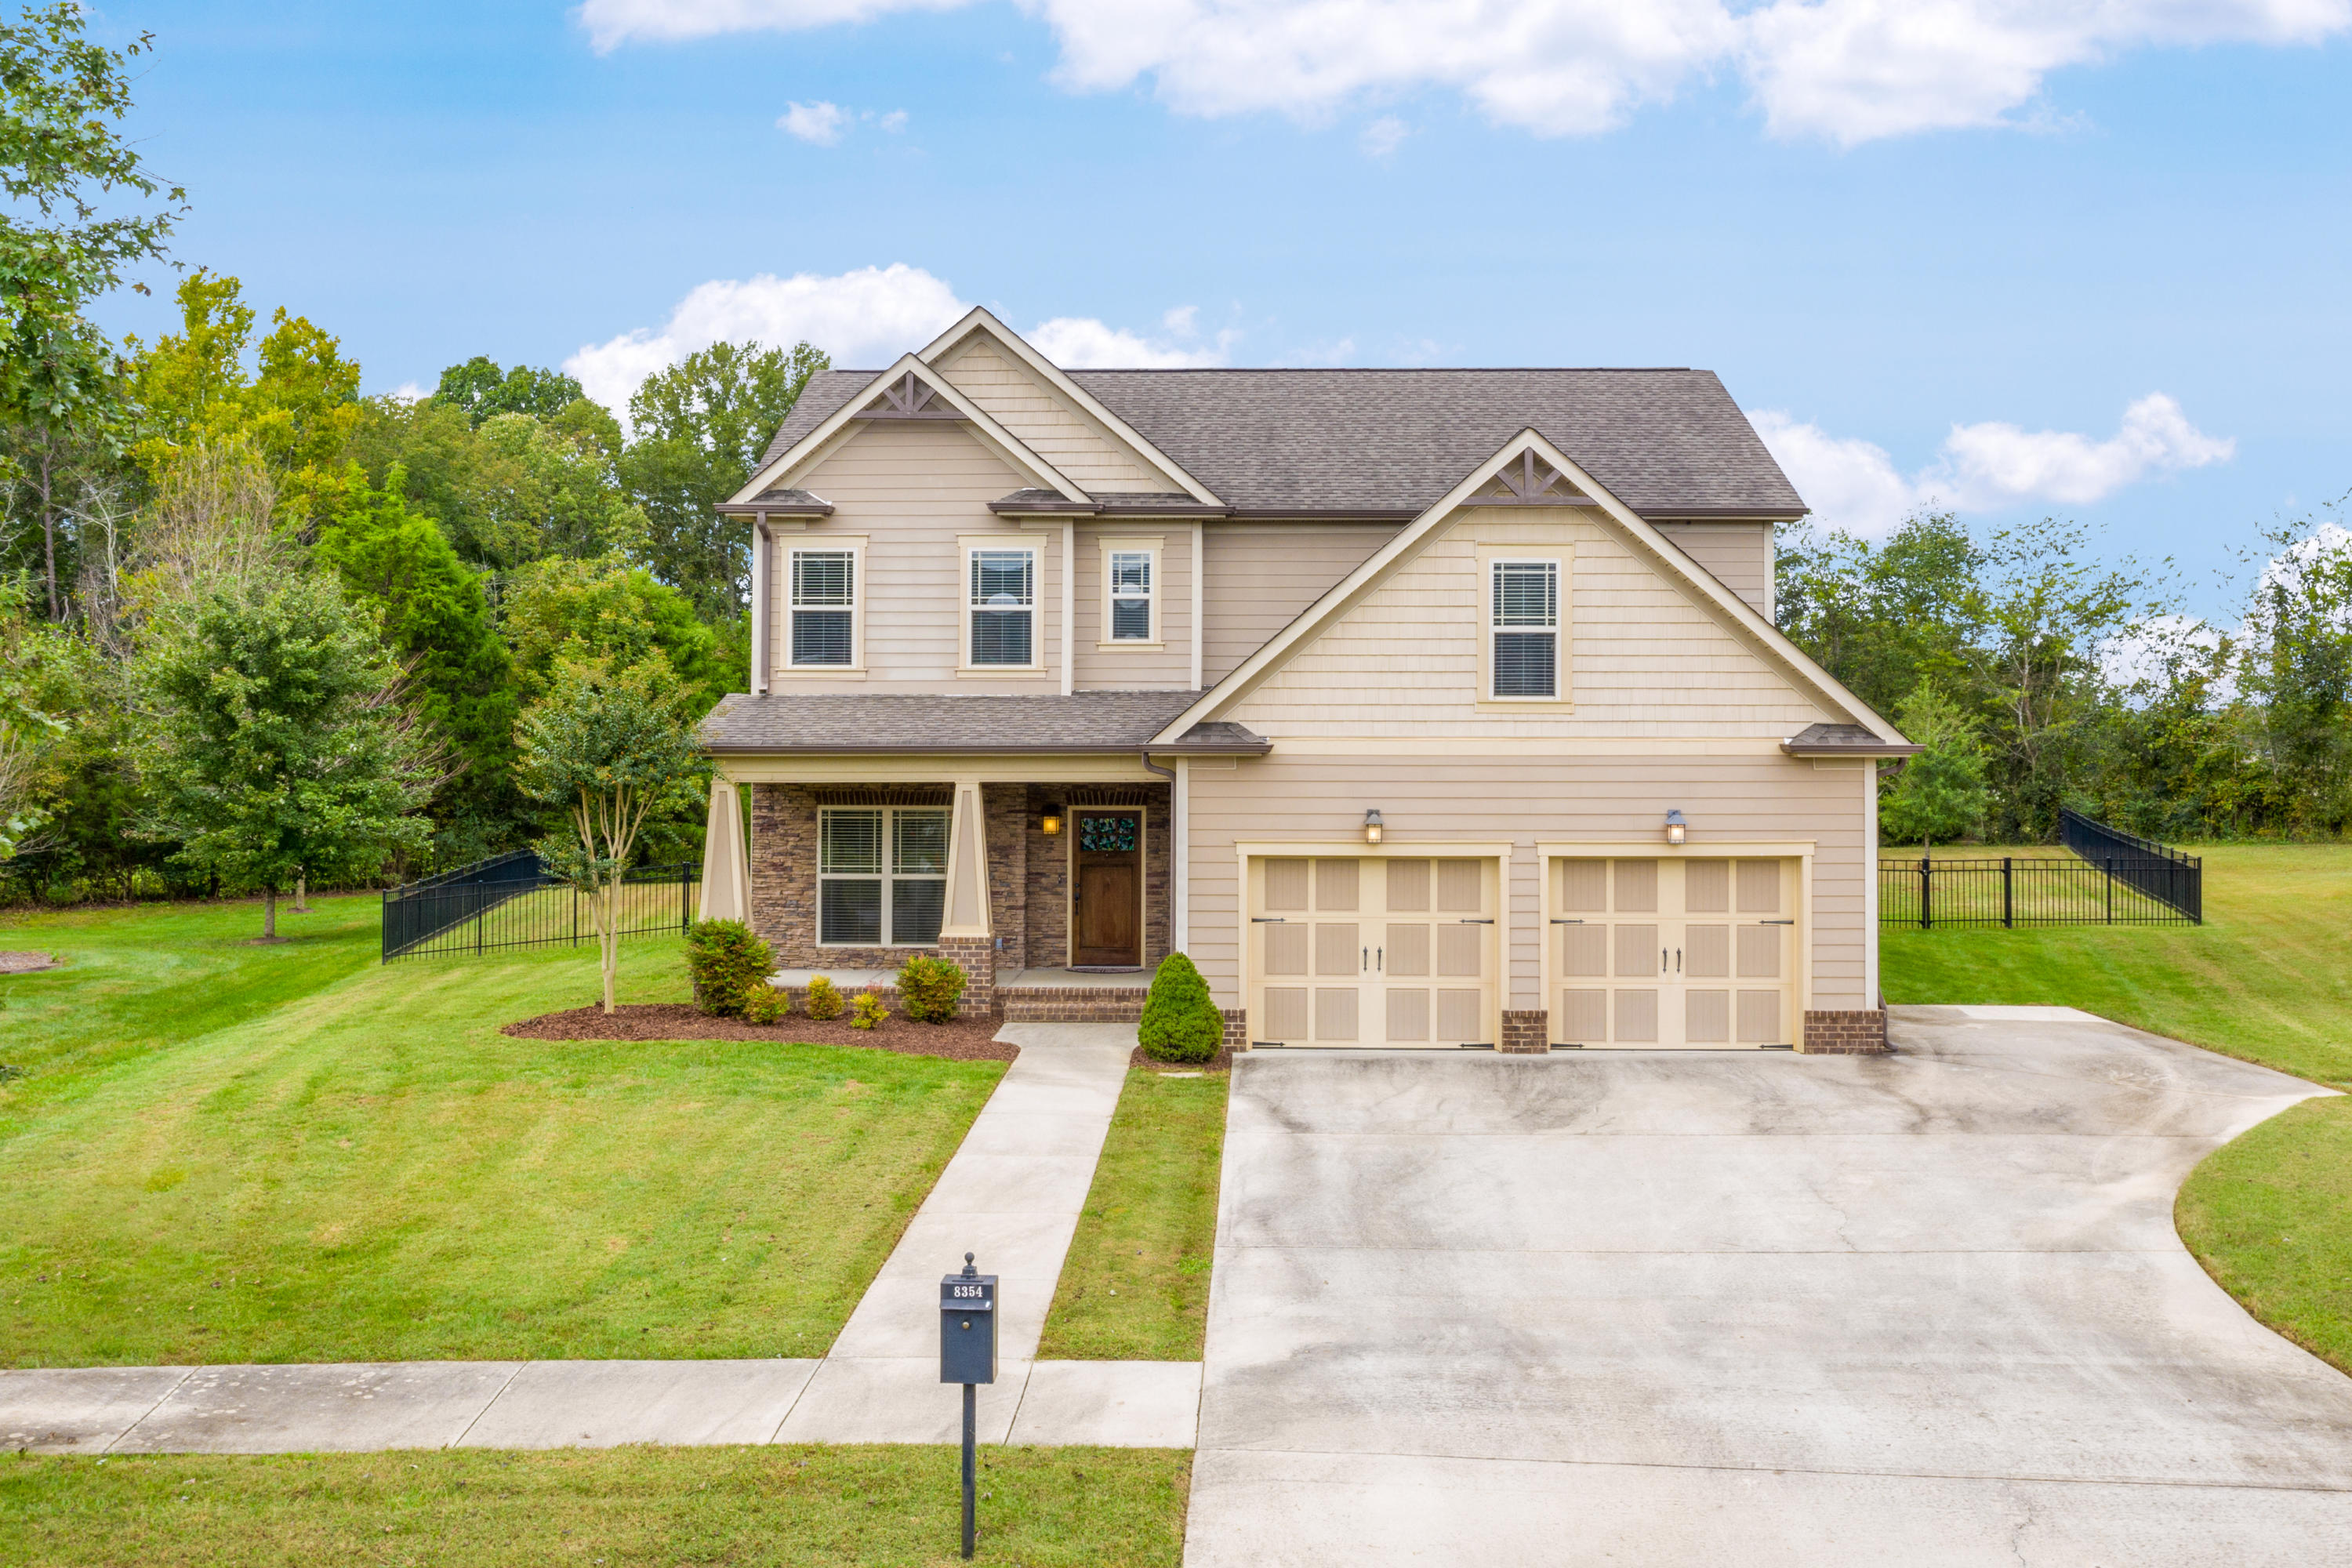 8354 Front Gate Cir, Ooltewah, TN 37363